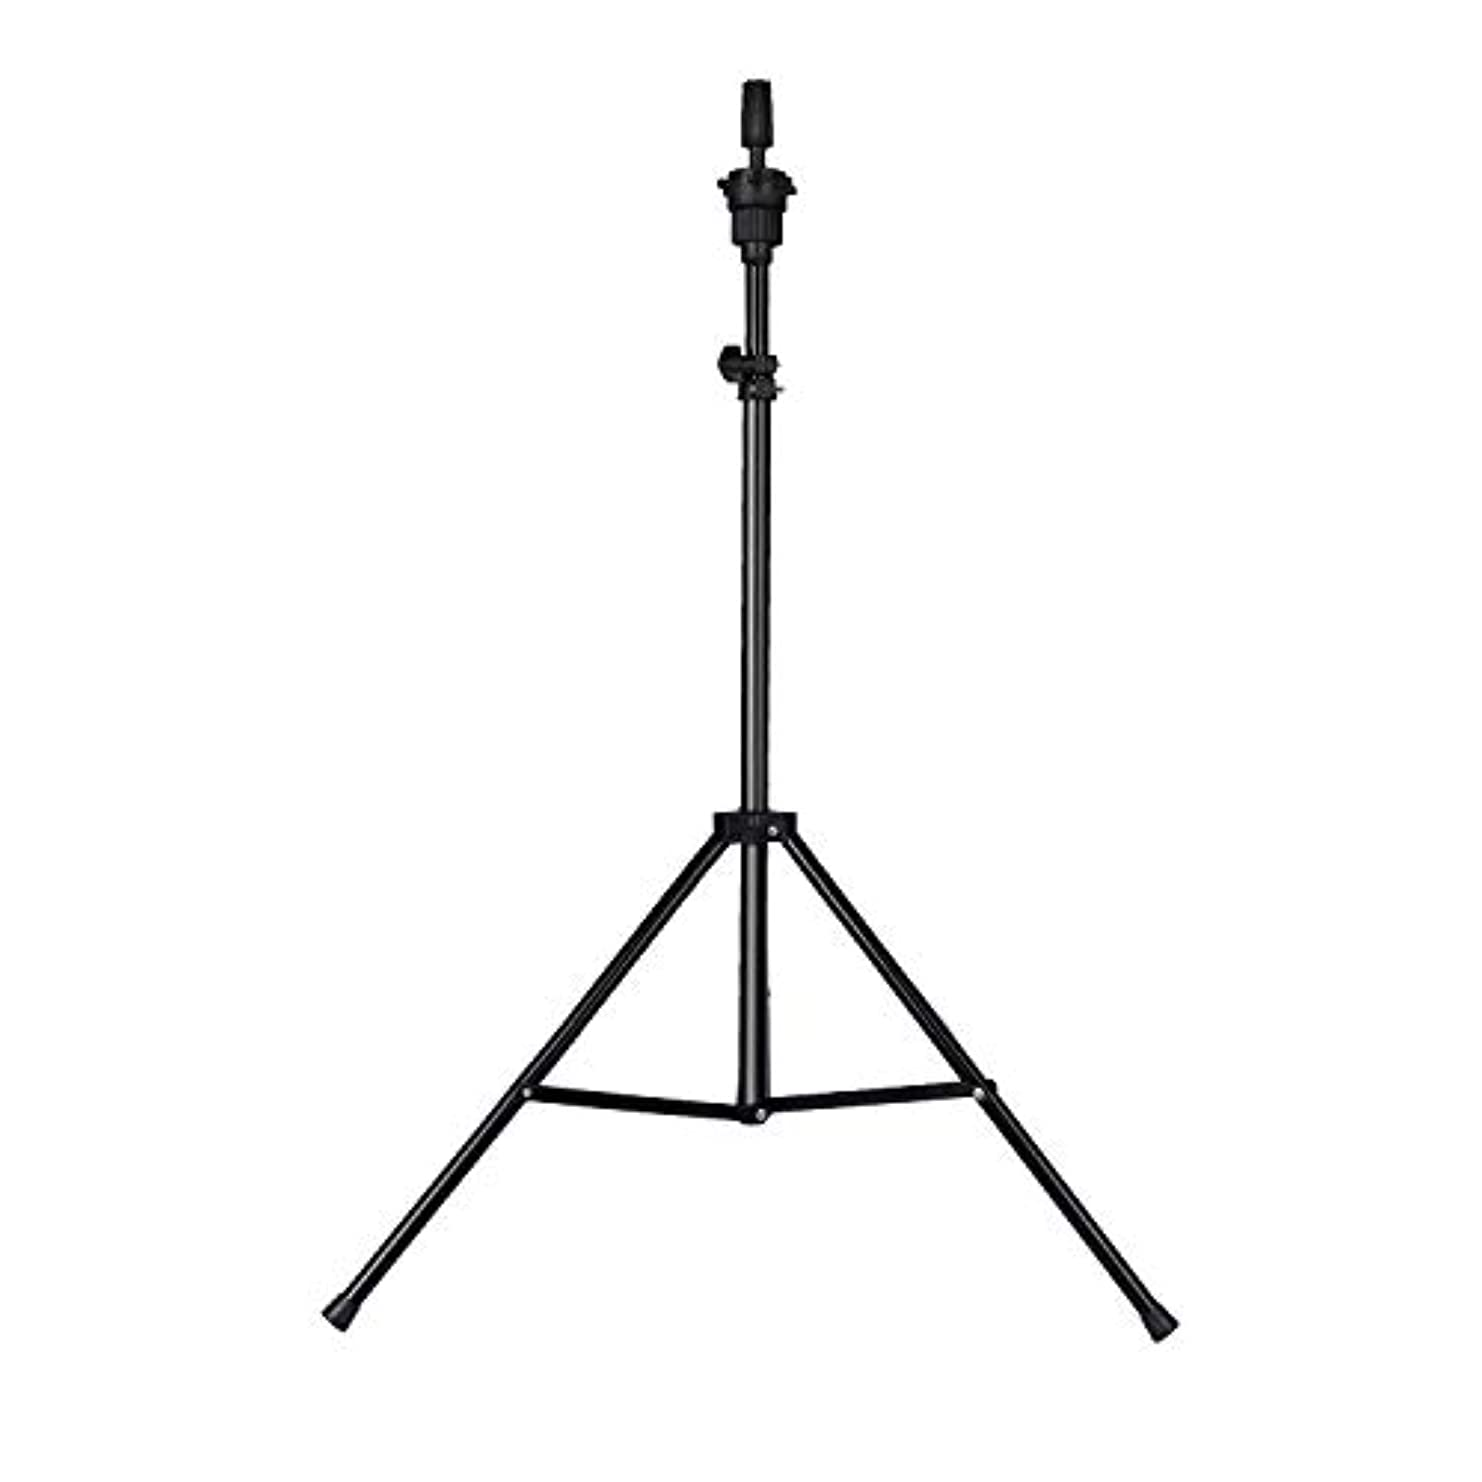 上向きスタウト多様体Training head stand model holder adjustable wig tripod hairdressing hair【Does not include the head】